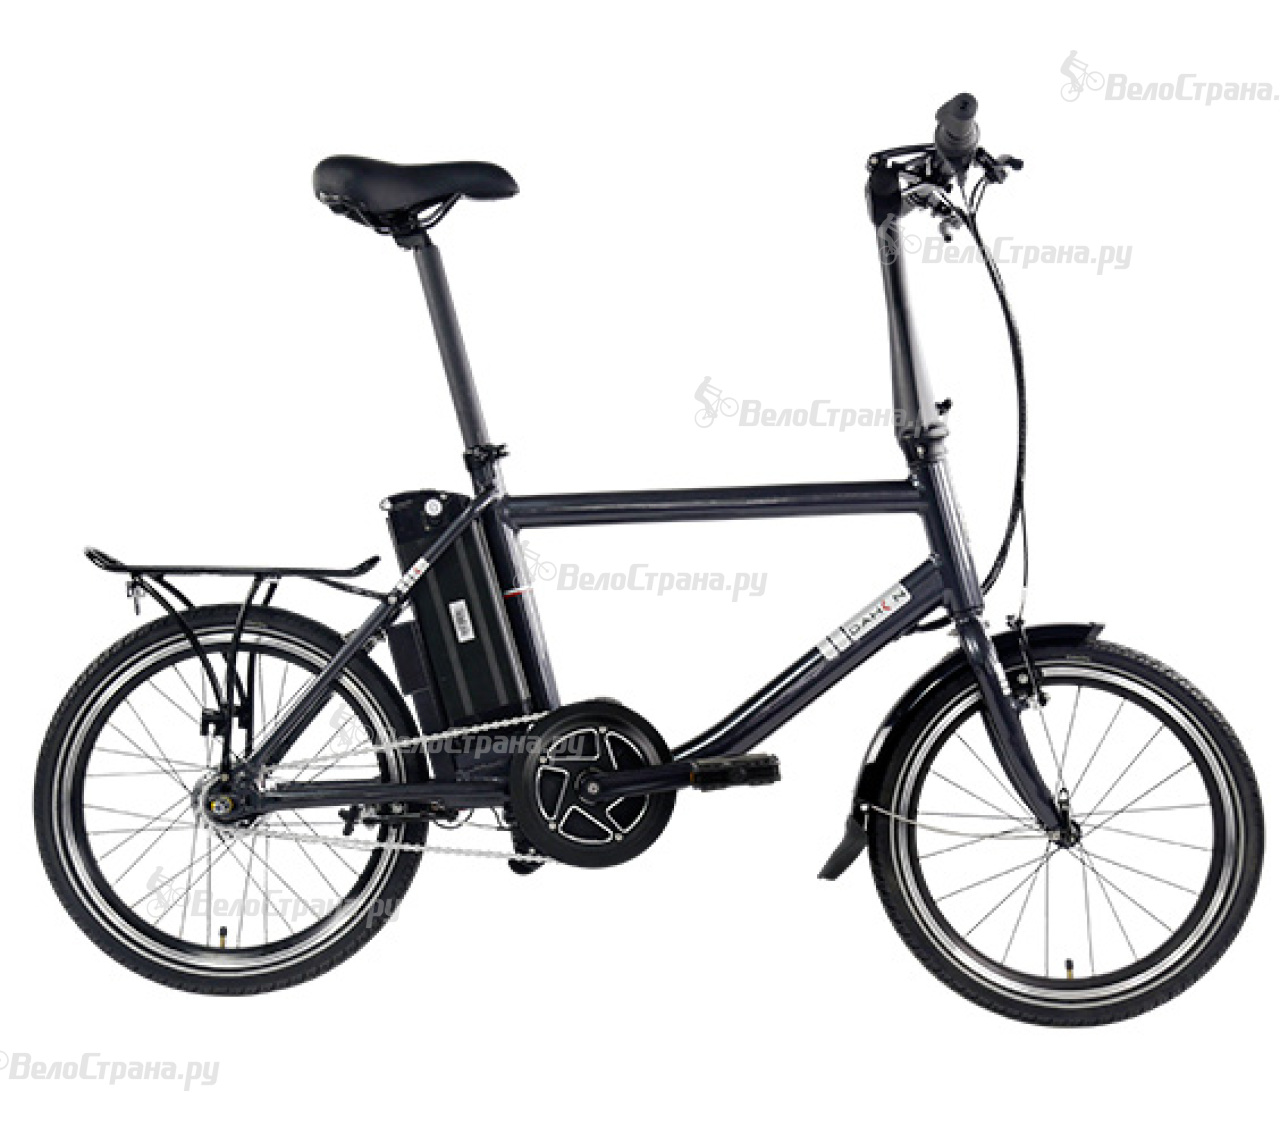 Велосипед Dahon Compact ES i7 (2017) велосипед dahon speed d7 2016